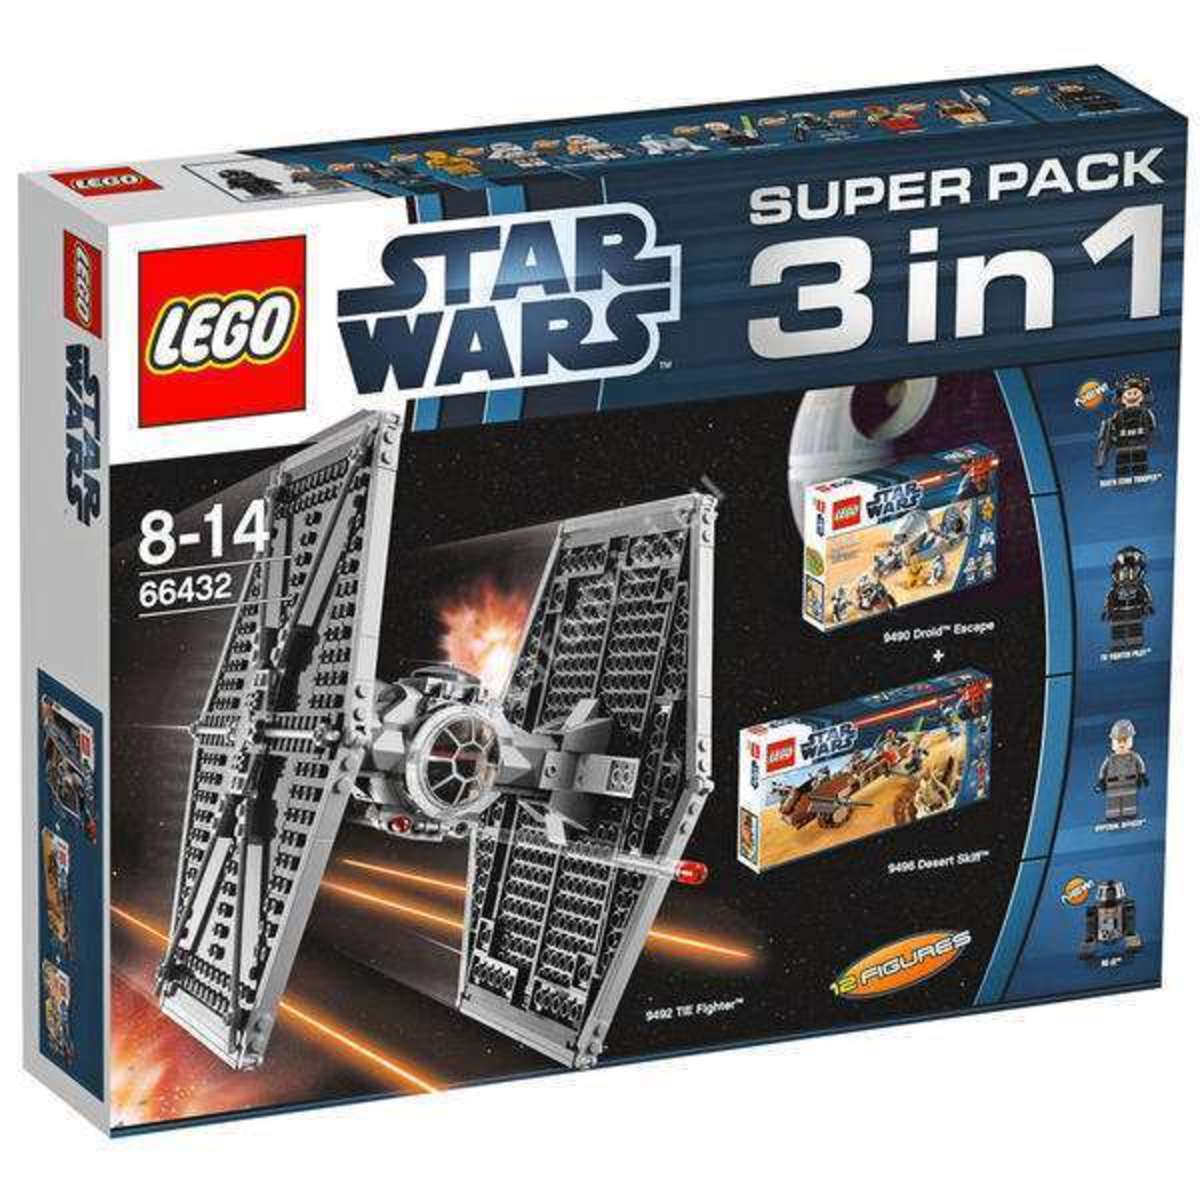 LEGO Star Wars Super Pack 3-in-1 66432 Box